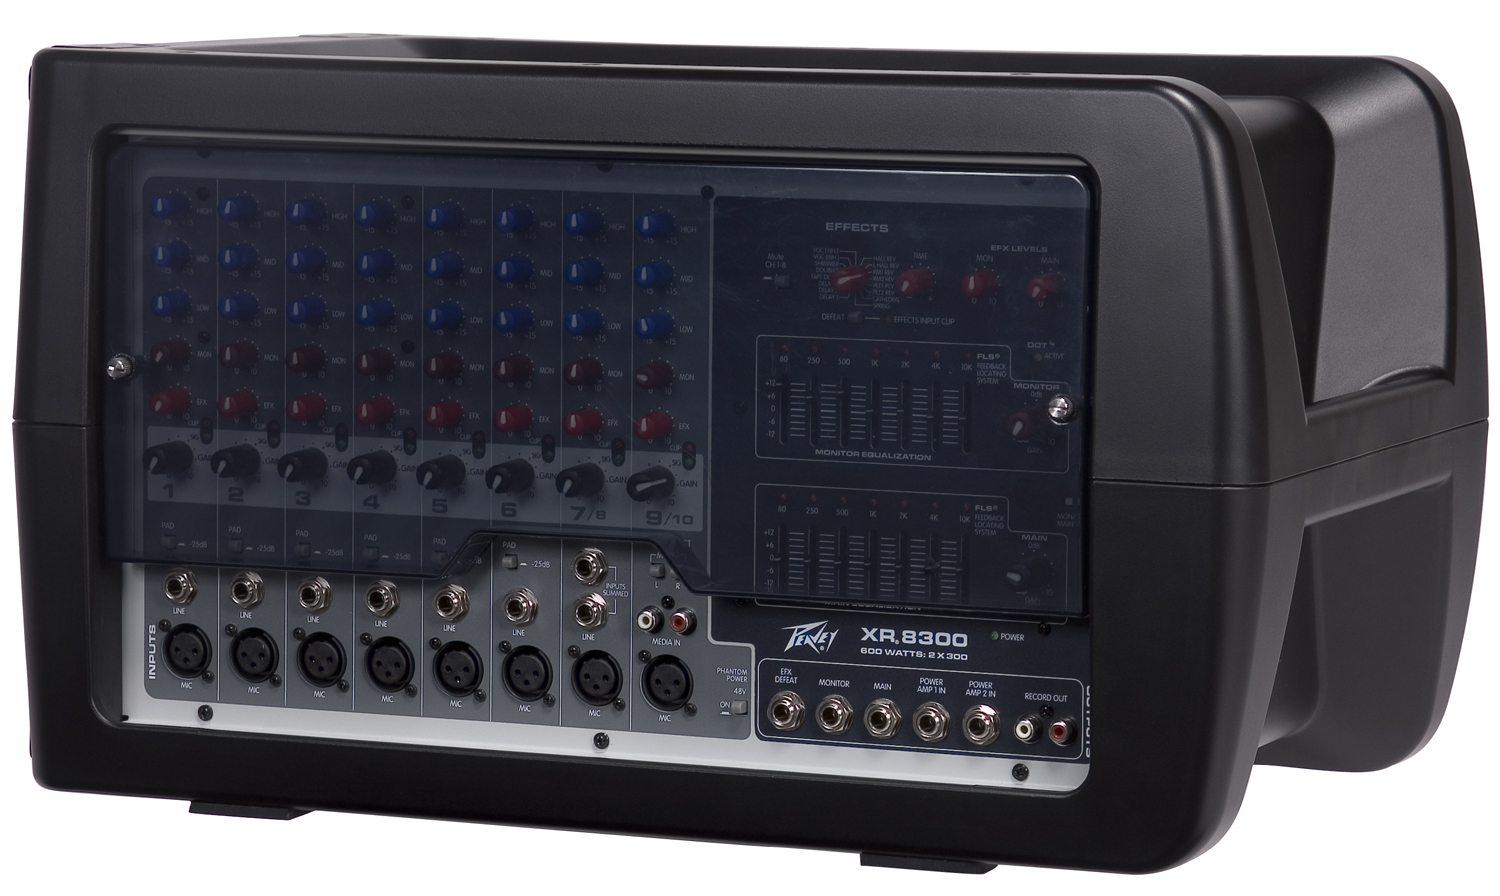 peavey xr 8300 pro audio mixer w low noise microphone preamps rh smartdj com Peavey Portable Powered Mixer Peavey XR8300 Powered Mixer